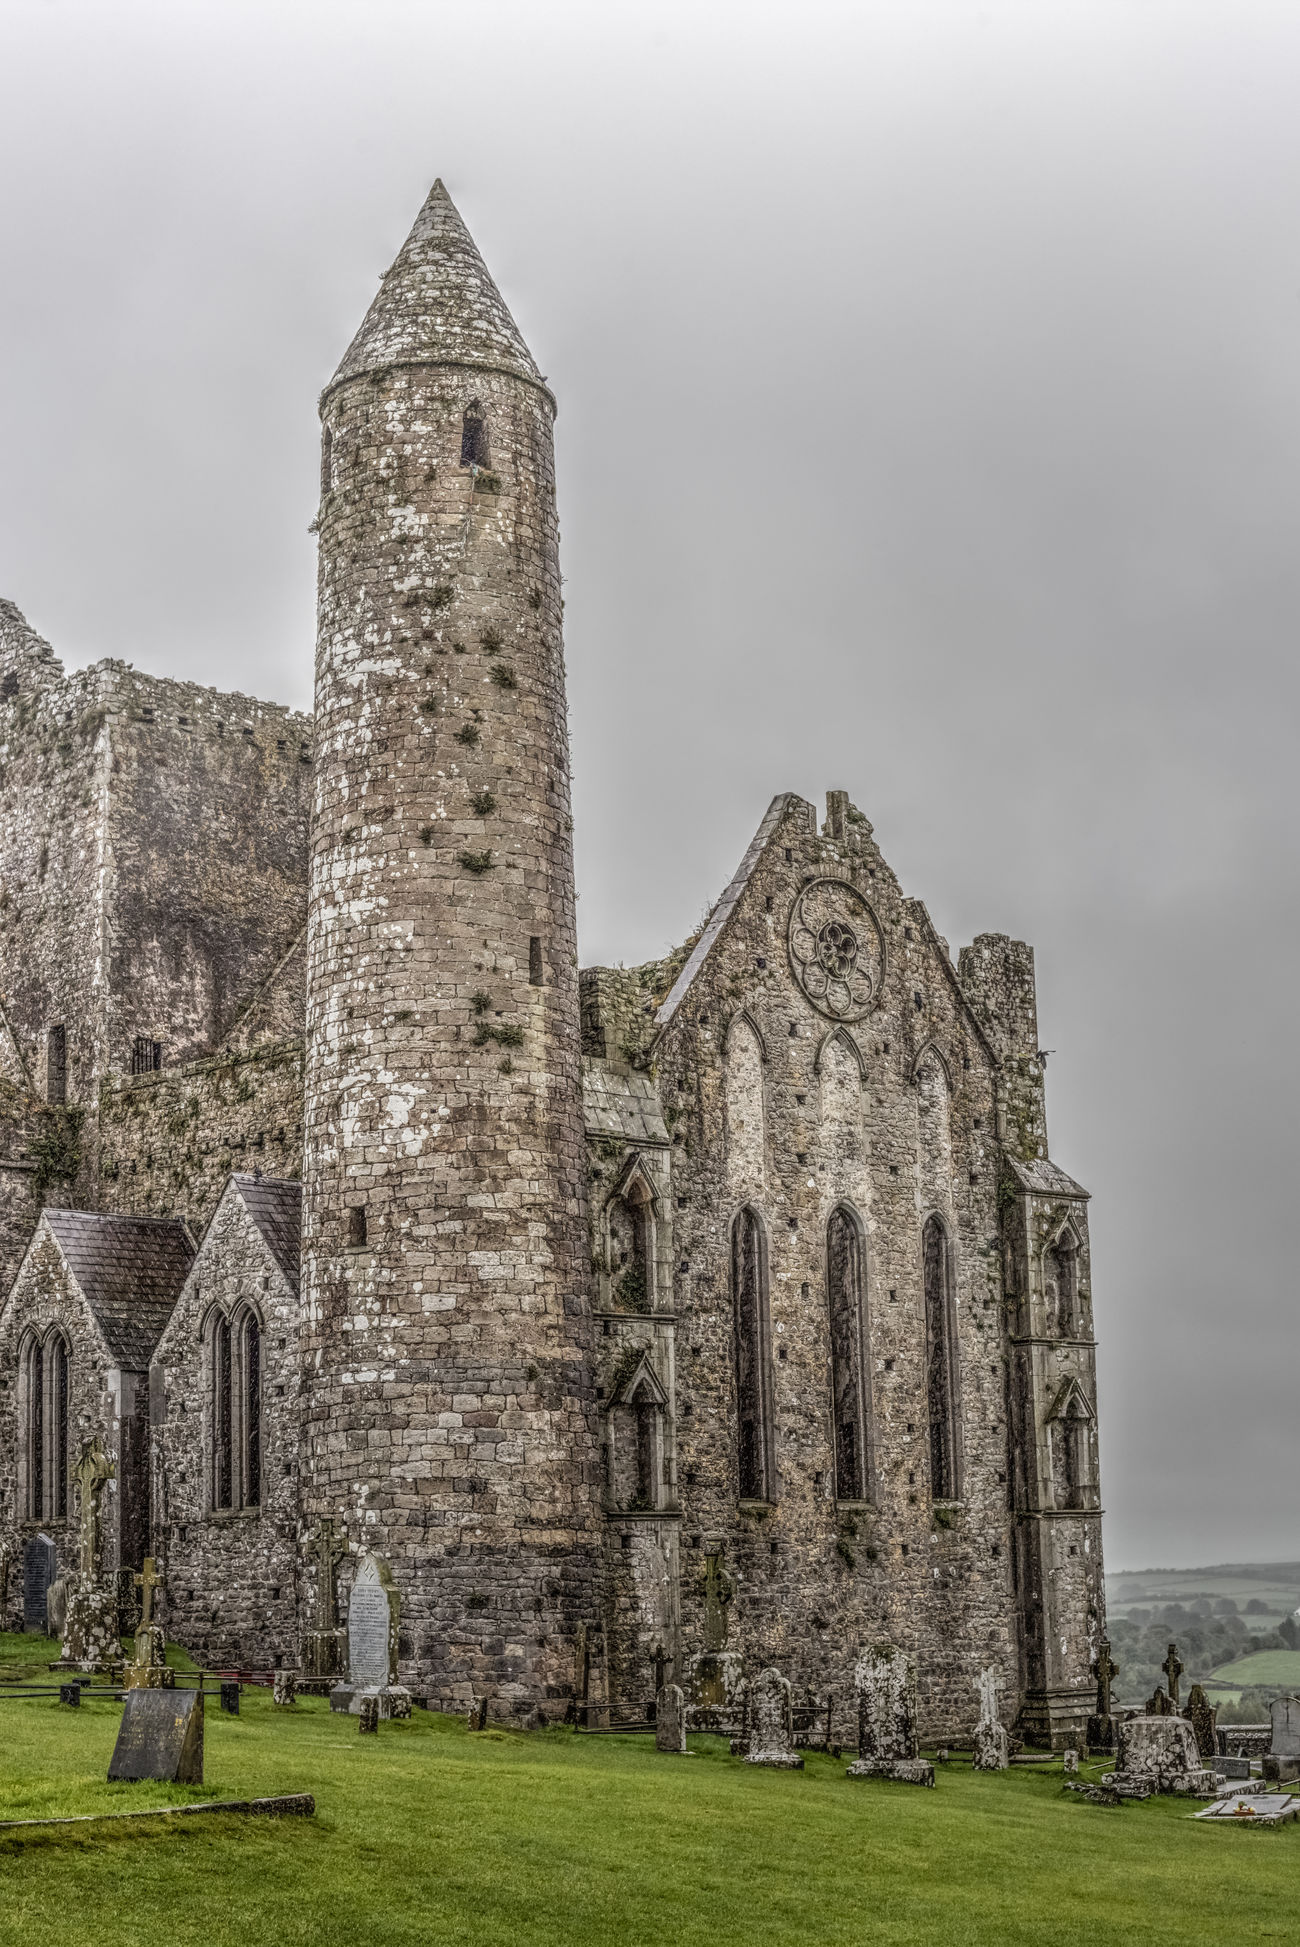 Rainy gloom descends over the Rock of Cashel, County Tipperary. The round tower dates from c.1100 while the cathedral was built between 1235 and 1270. The rock was sacked in 1647 during the Irish Confederate Wars by forces aligned with Cromwell. Close to 1,000 were killed during the sacking of Cashel, as many of the locals had sought protection in the church, with the bodies in the churchyard being described as being five or six deep. In the final stand numerous ladders were laid against the church windows and soldiers swarmed the building. For another half an hour the massacre raged on inside the church, until a depleted few retreated up the bell tower. Only sixty defending soldiers remained at this point, and accepted a final call to surrender. However, after they had descended the tower and thrown their swords away, all were killed. The atrocity at Cashel caused a deep impact in Ireland, as it was the worst single atrocity committed in Ireland since the start of fighting in 1641. The Rock of Cashel was finally abandoned completely in 1749 with the removal of the cathedral roof. Love Life, Love Photography Architecture Building Exterior Built Structure Day History Medieval Mountain No People Outdoors Travel Destinations Irish Catholic Cathedral Ruins Cromwell  Rock Of Cashel Old Buildings Medieval Architecture Tipperary Ireland Round Tower Church Stone Old Ruin Gloomy